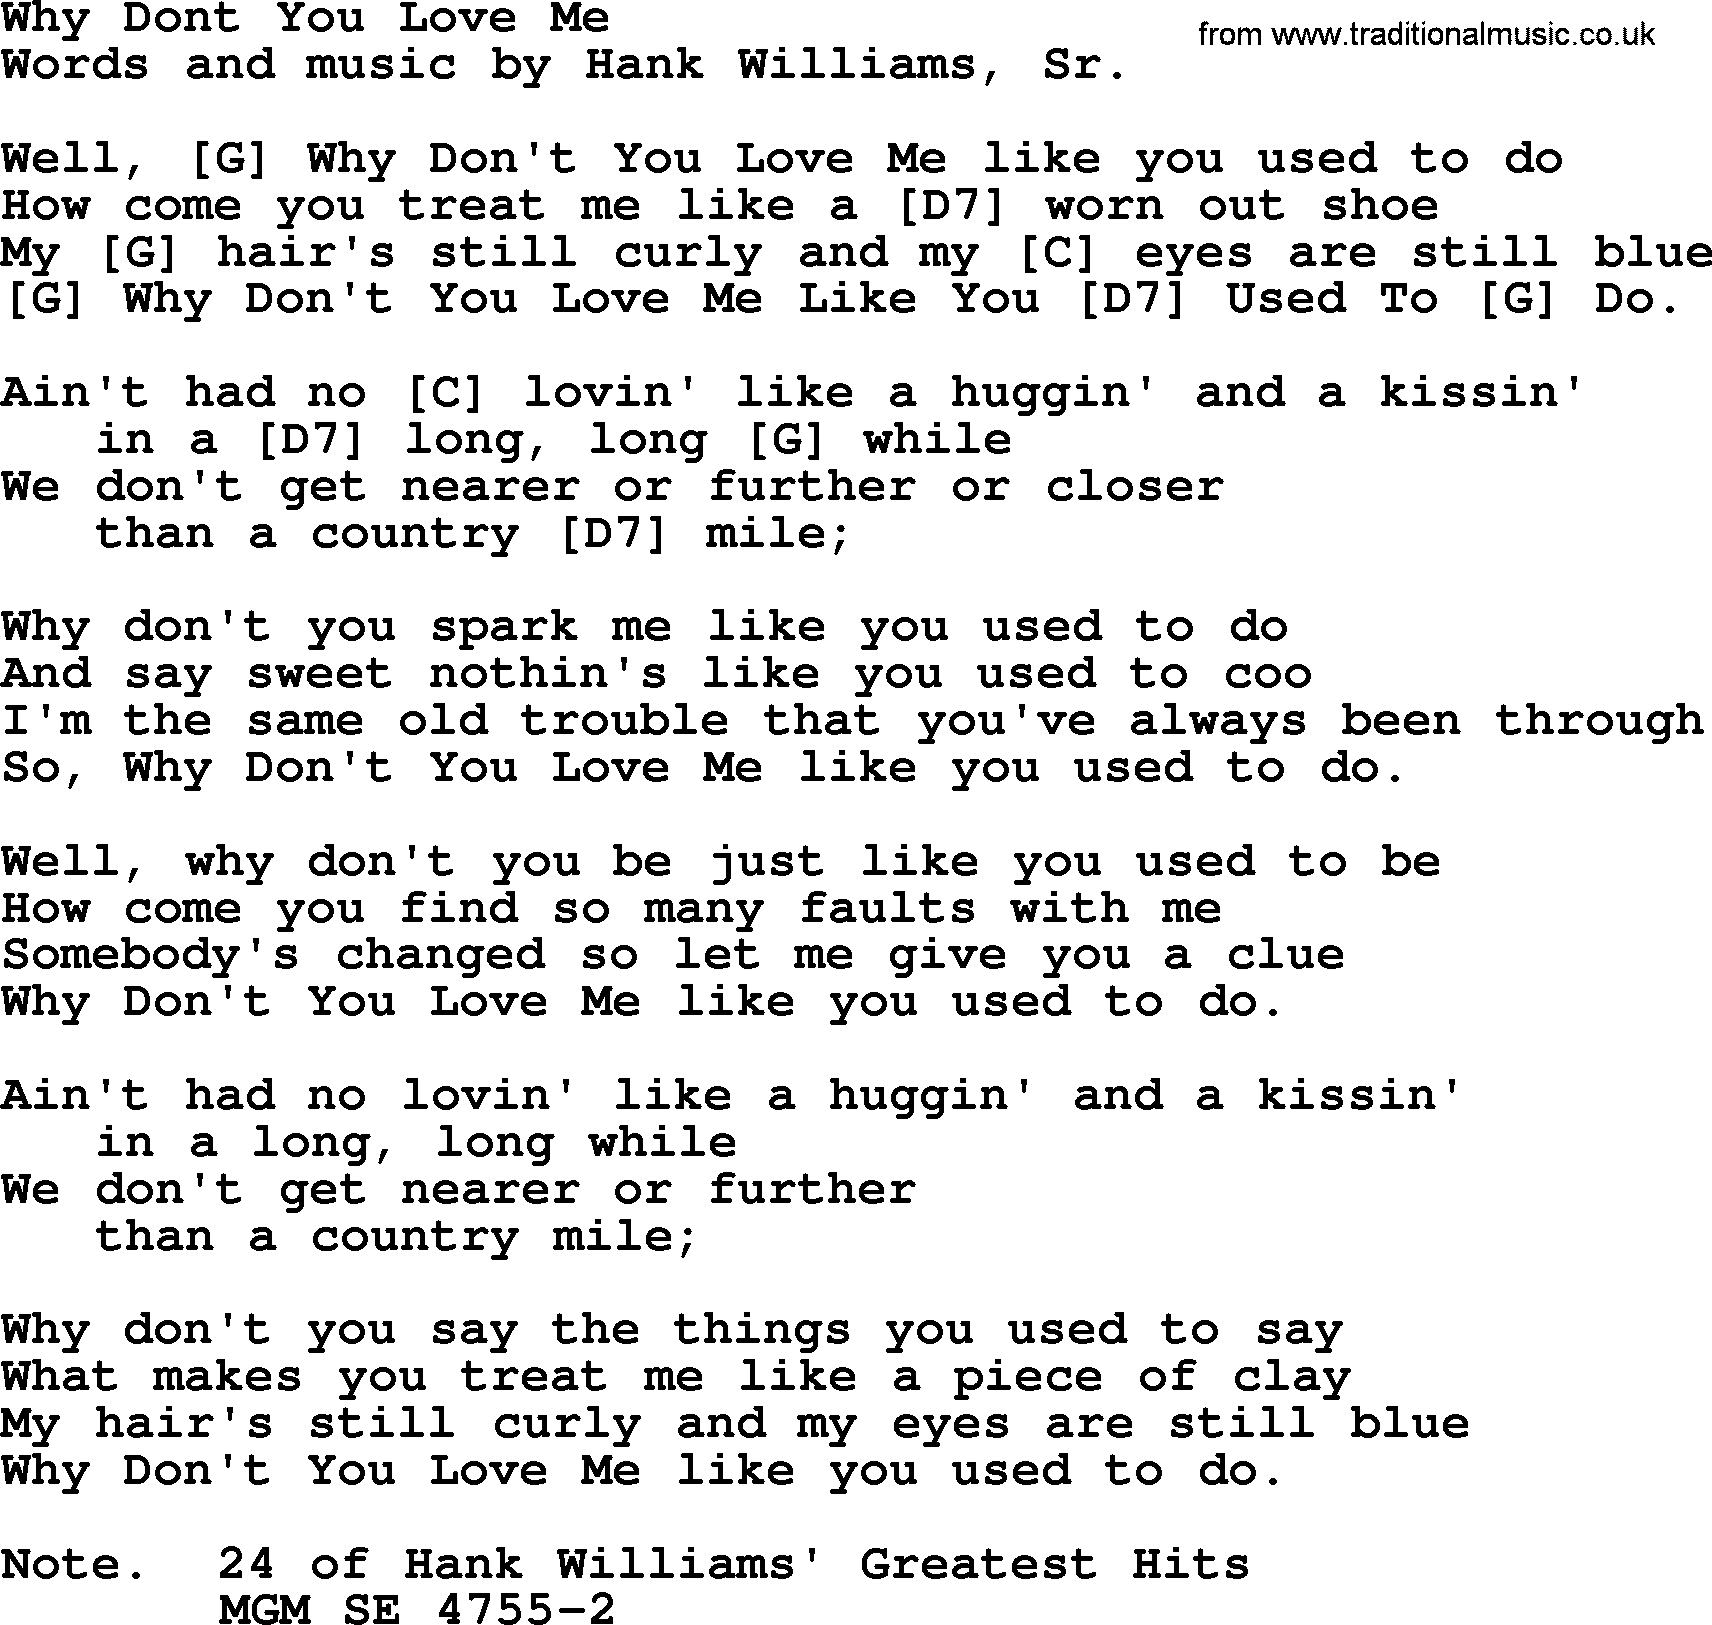 Hank Williams Song Why Dont You Love Me Lyrics And Chords